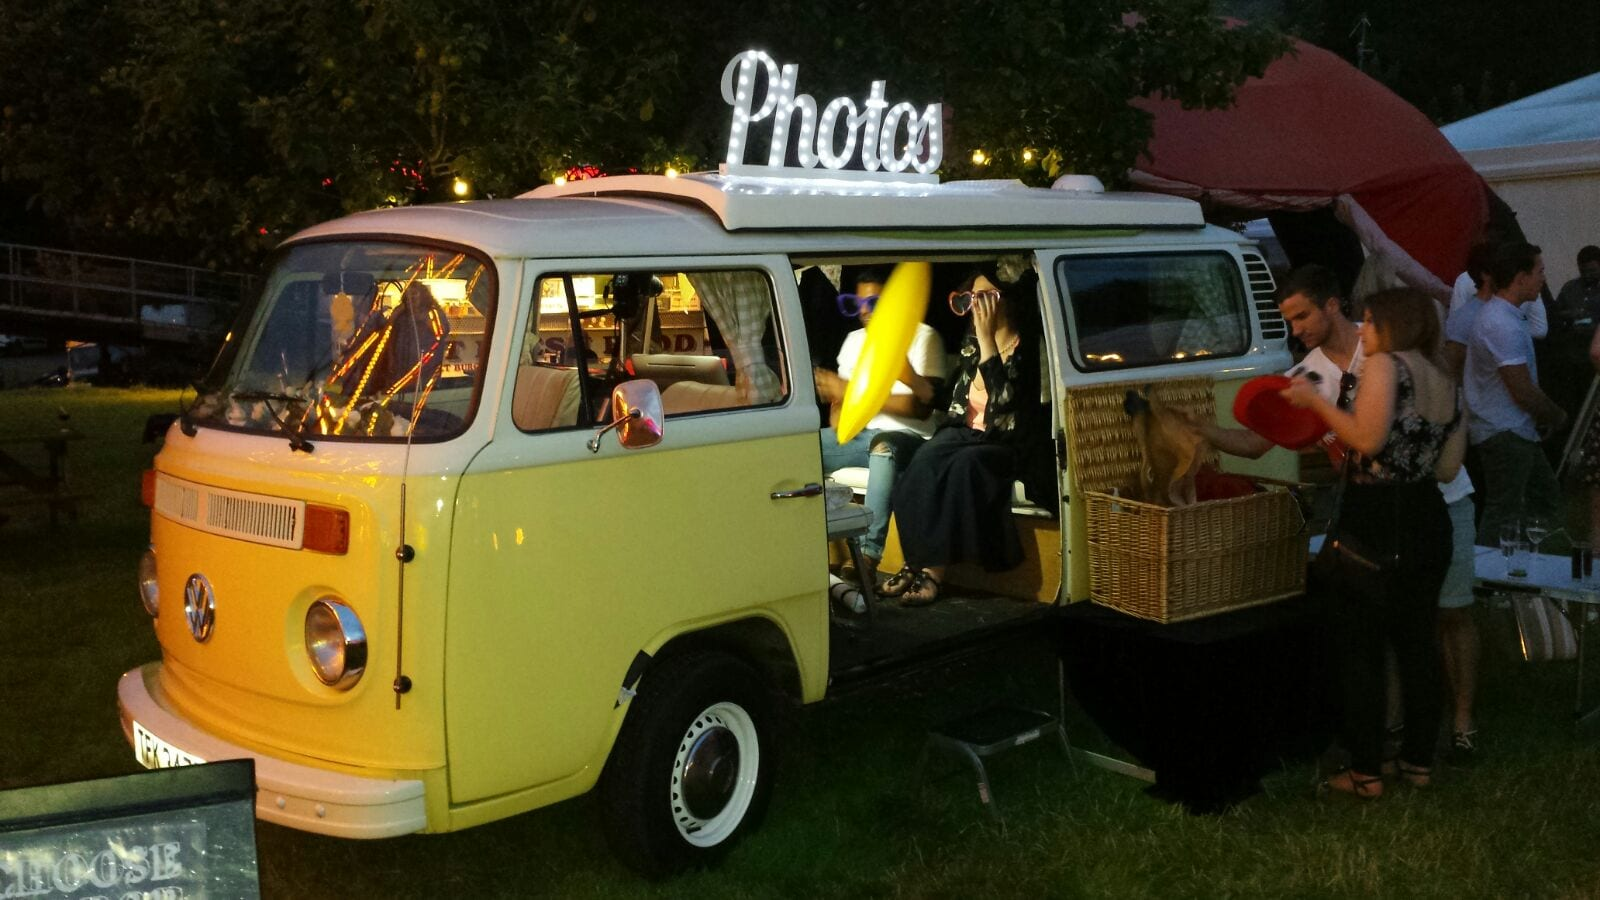 campervan photobooth for outdoor events